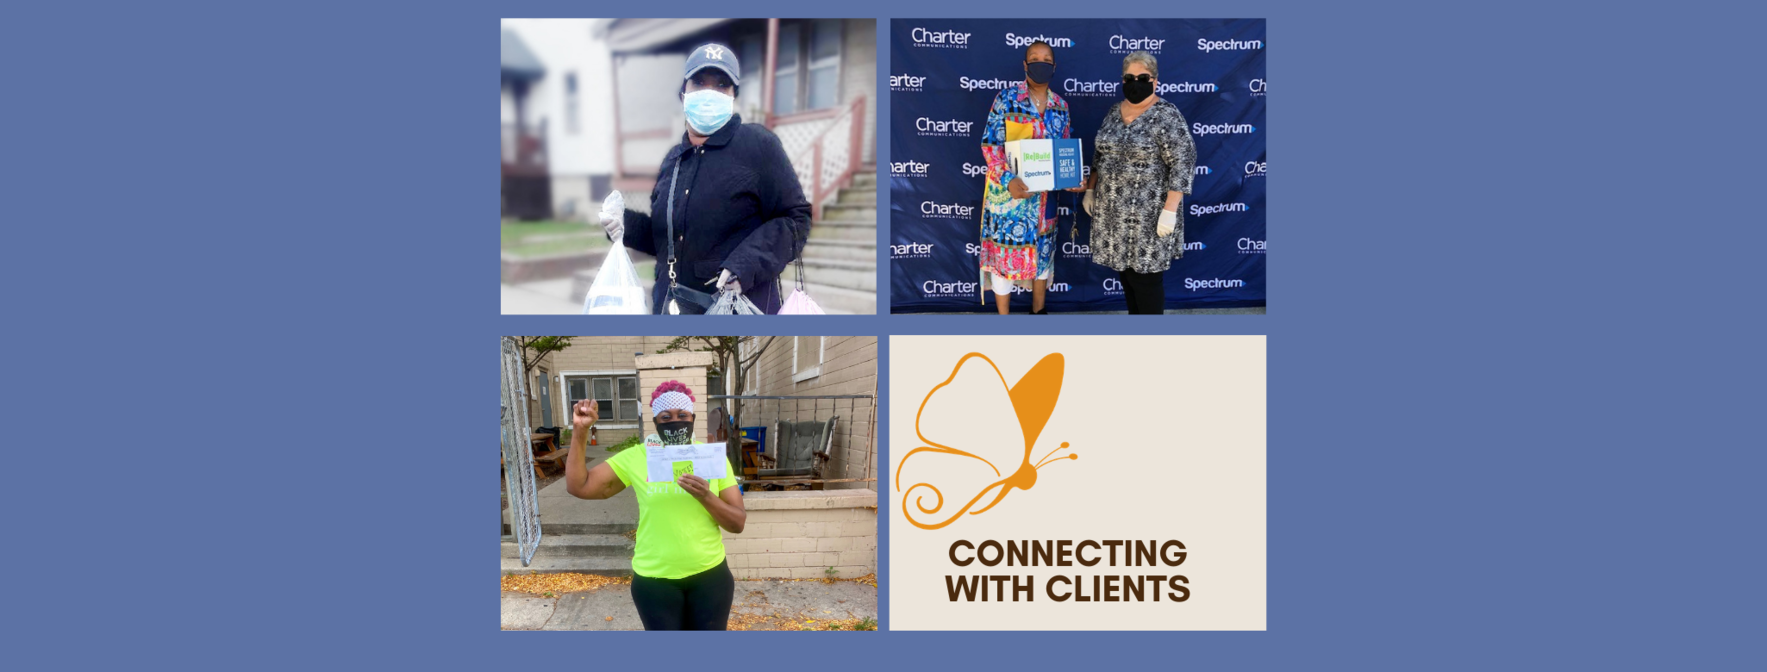 Give today so more women like Cheri can get the housing and treatment they need image